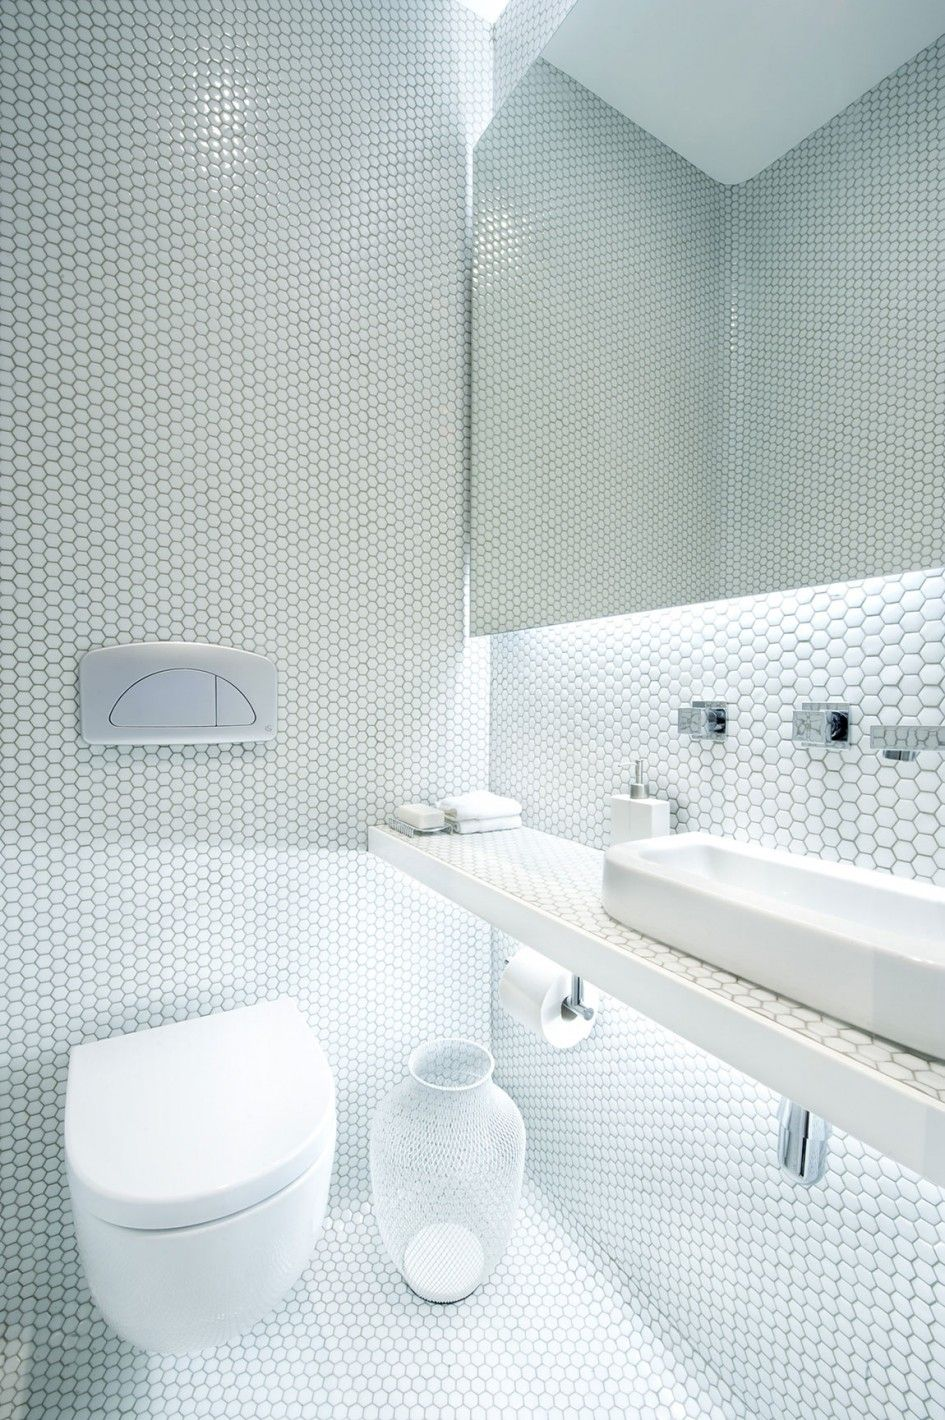 Architecture white wall hexagon mosaic ceramic tile simple architecture white wall hexagon mosaic ceramic tile simple minimalist bathroom design ideas the comfortable apartment living by the market dailygadgetfo Choice Image